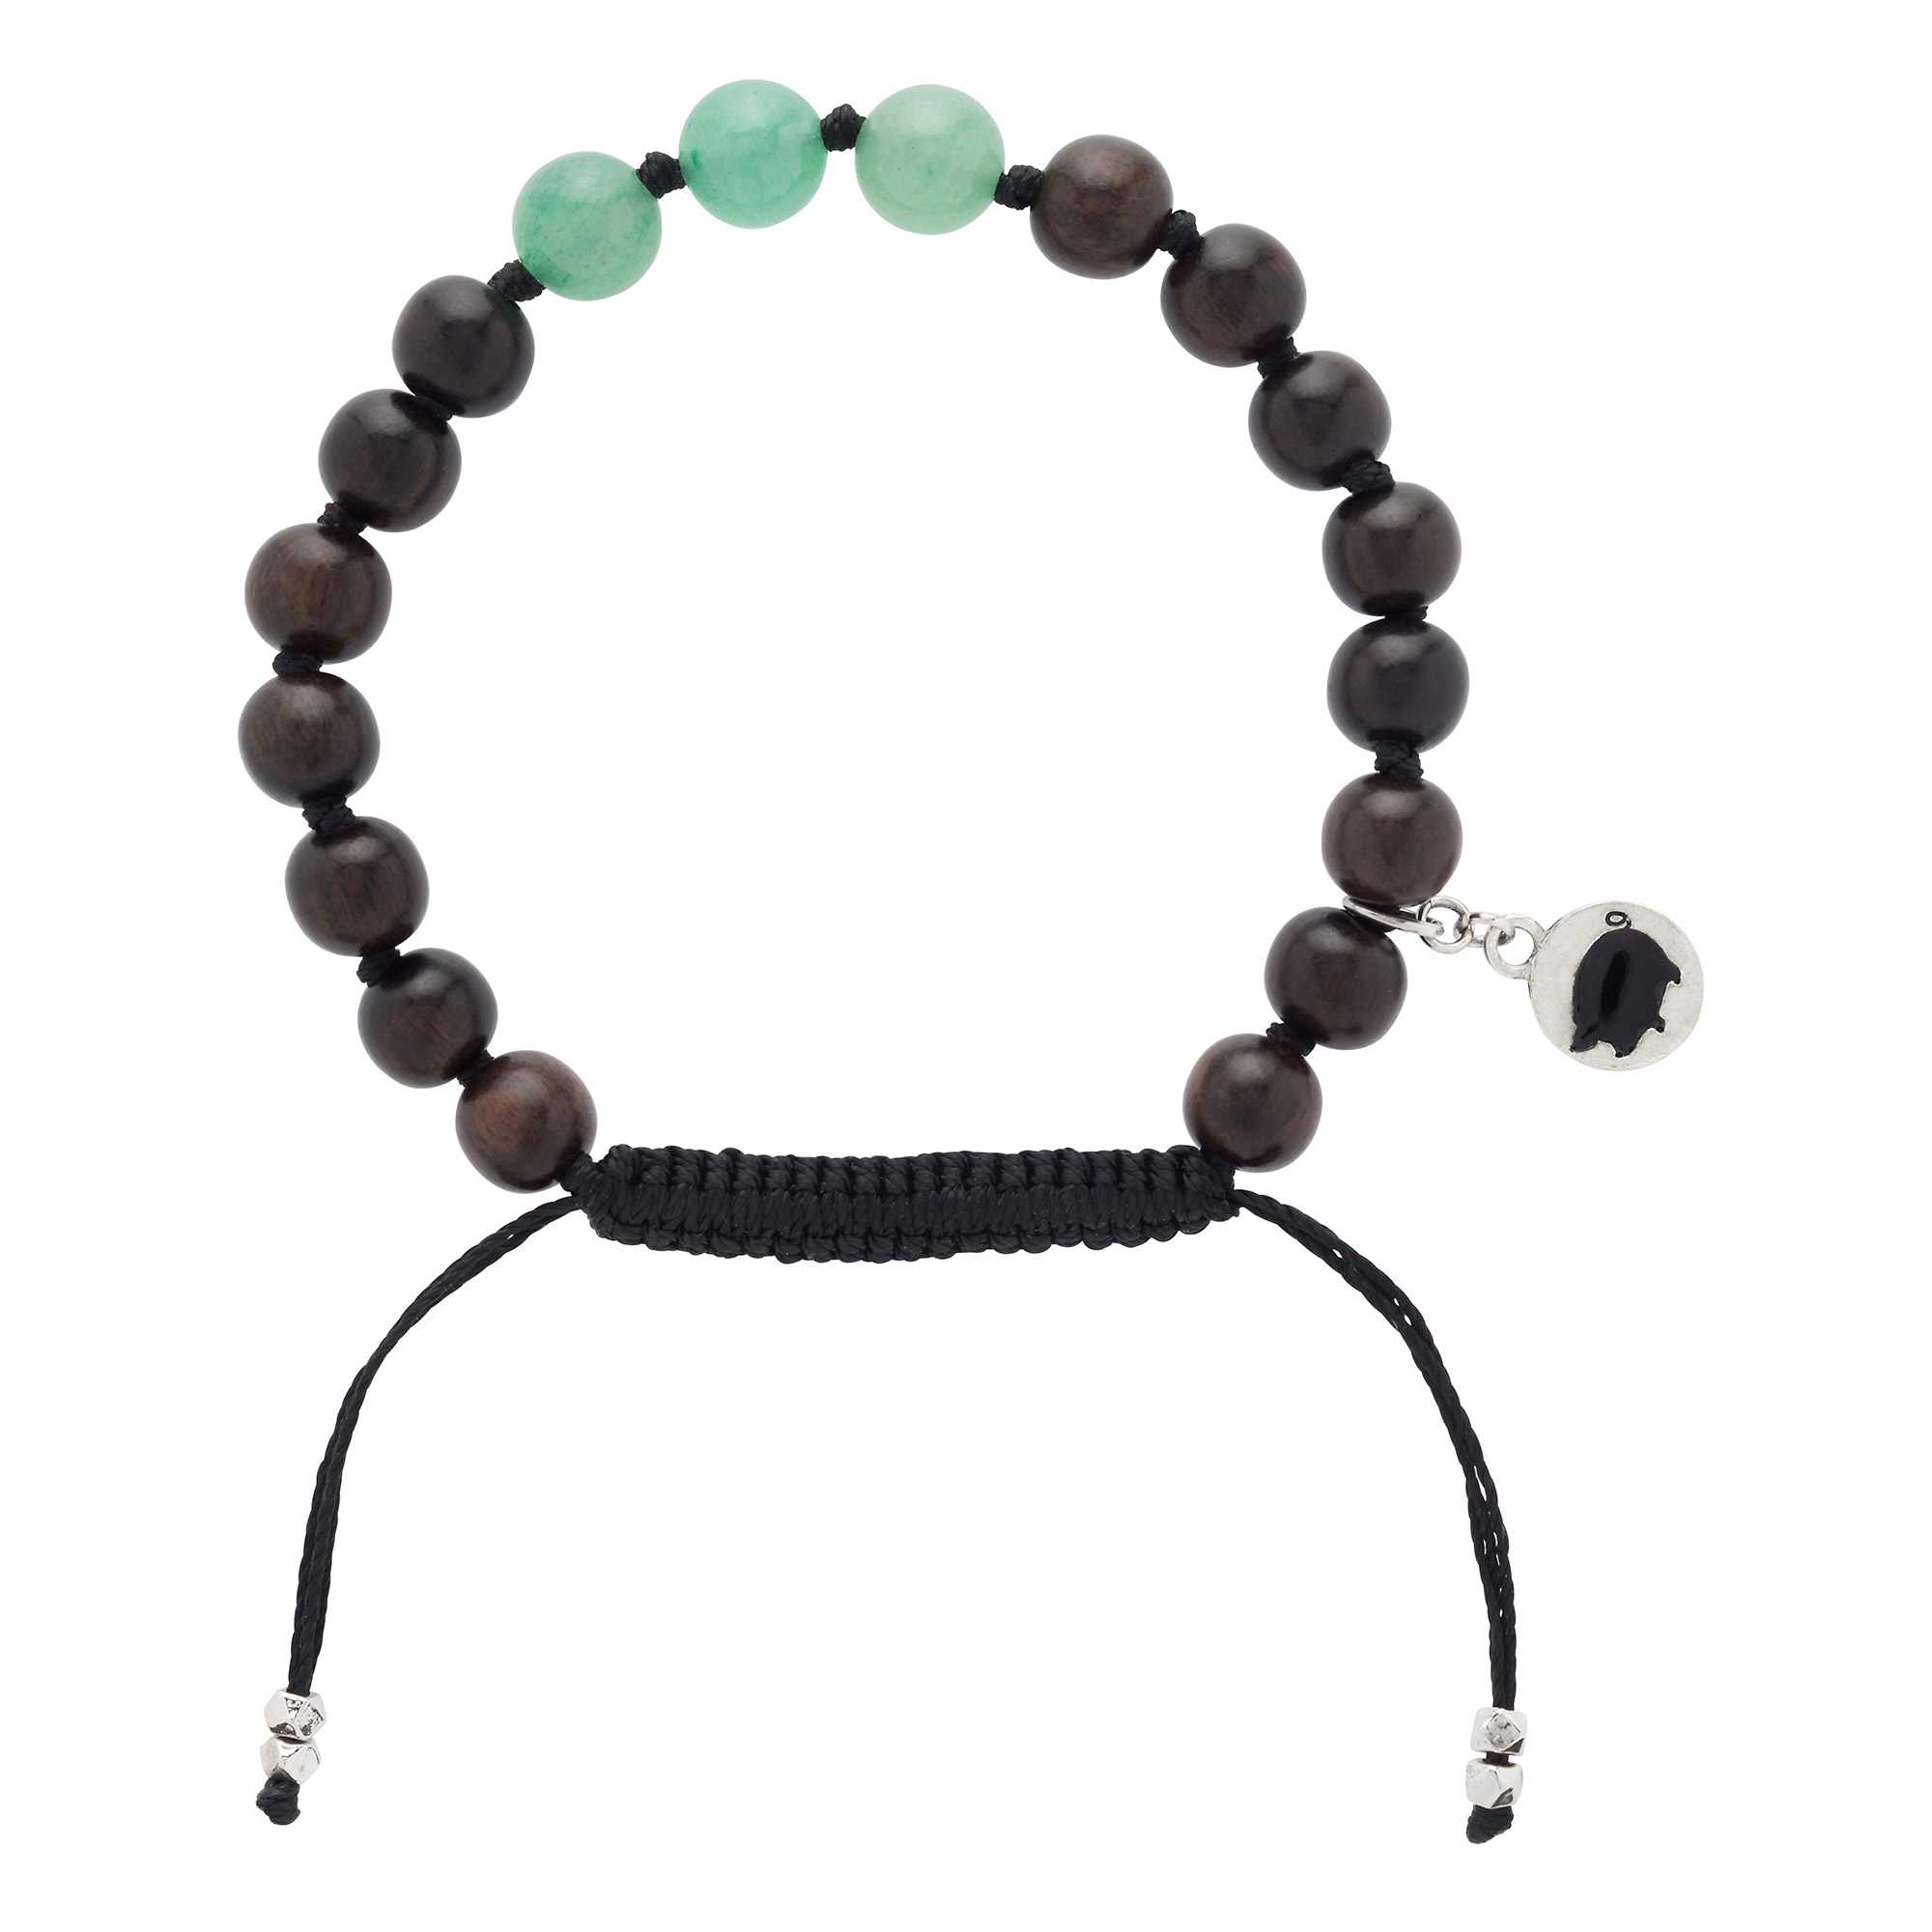 Featuring sustainable robles wood beads + a trio of green aventurine gemstones, plus a macrame slide closure for easily adjustable sizing.